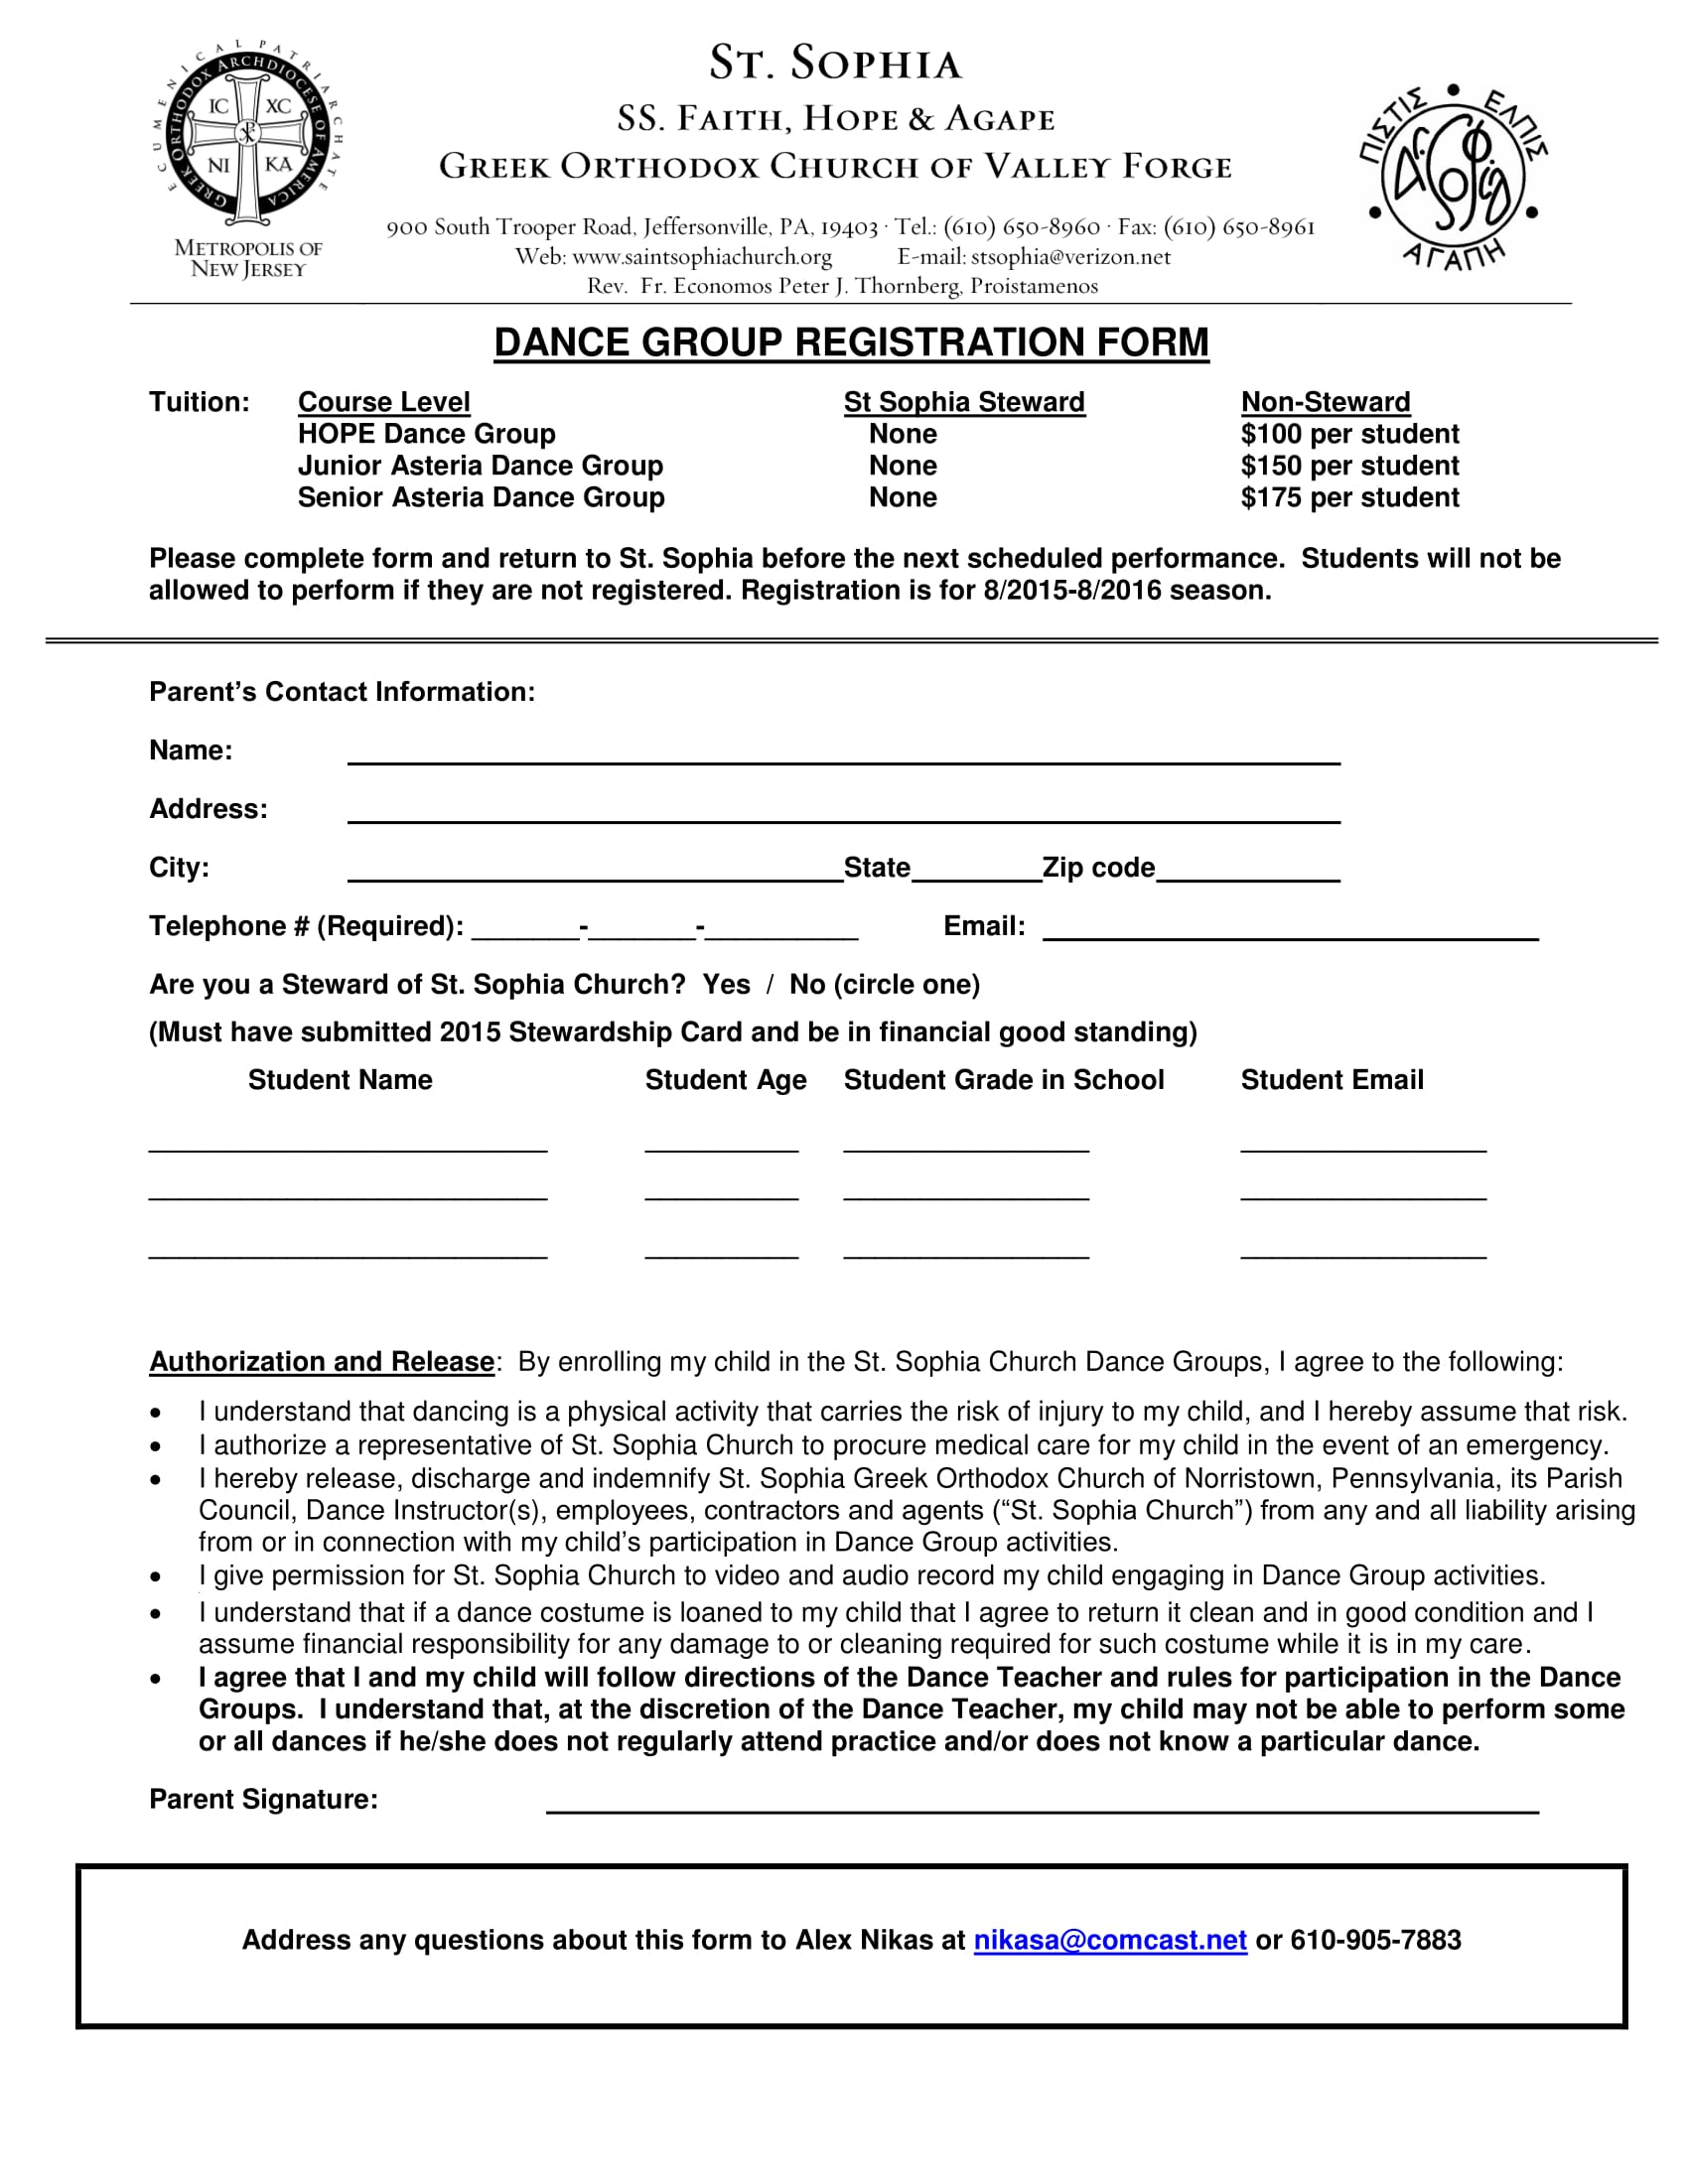 Free 10 Dance Registration Form Samples Pdf